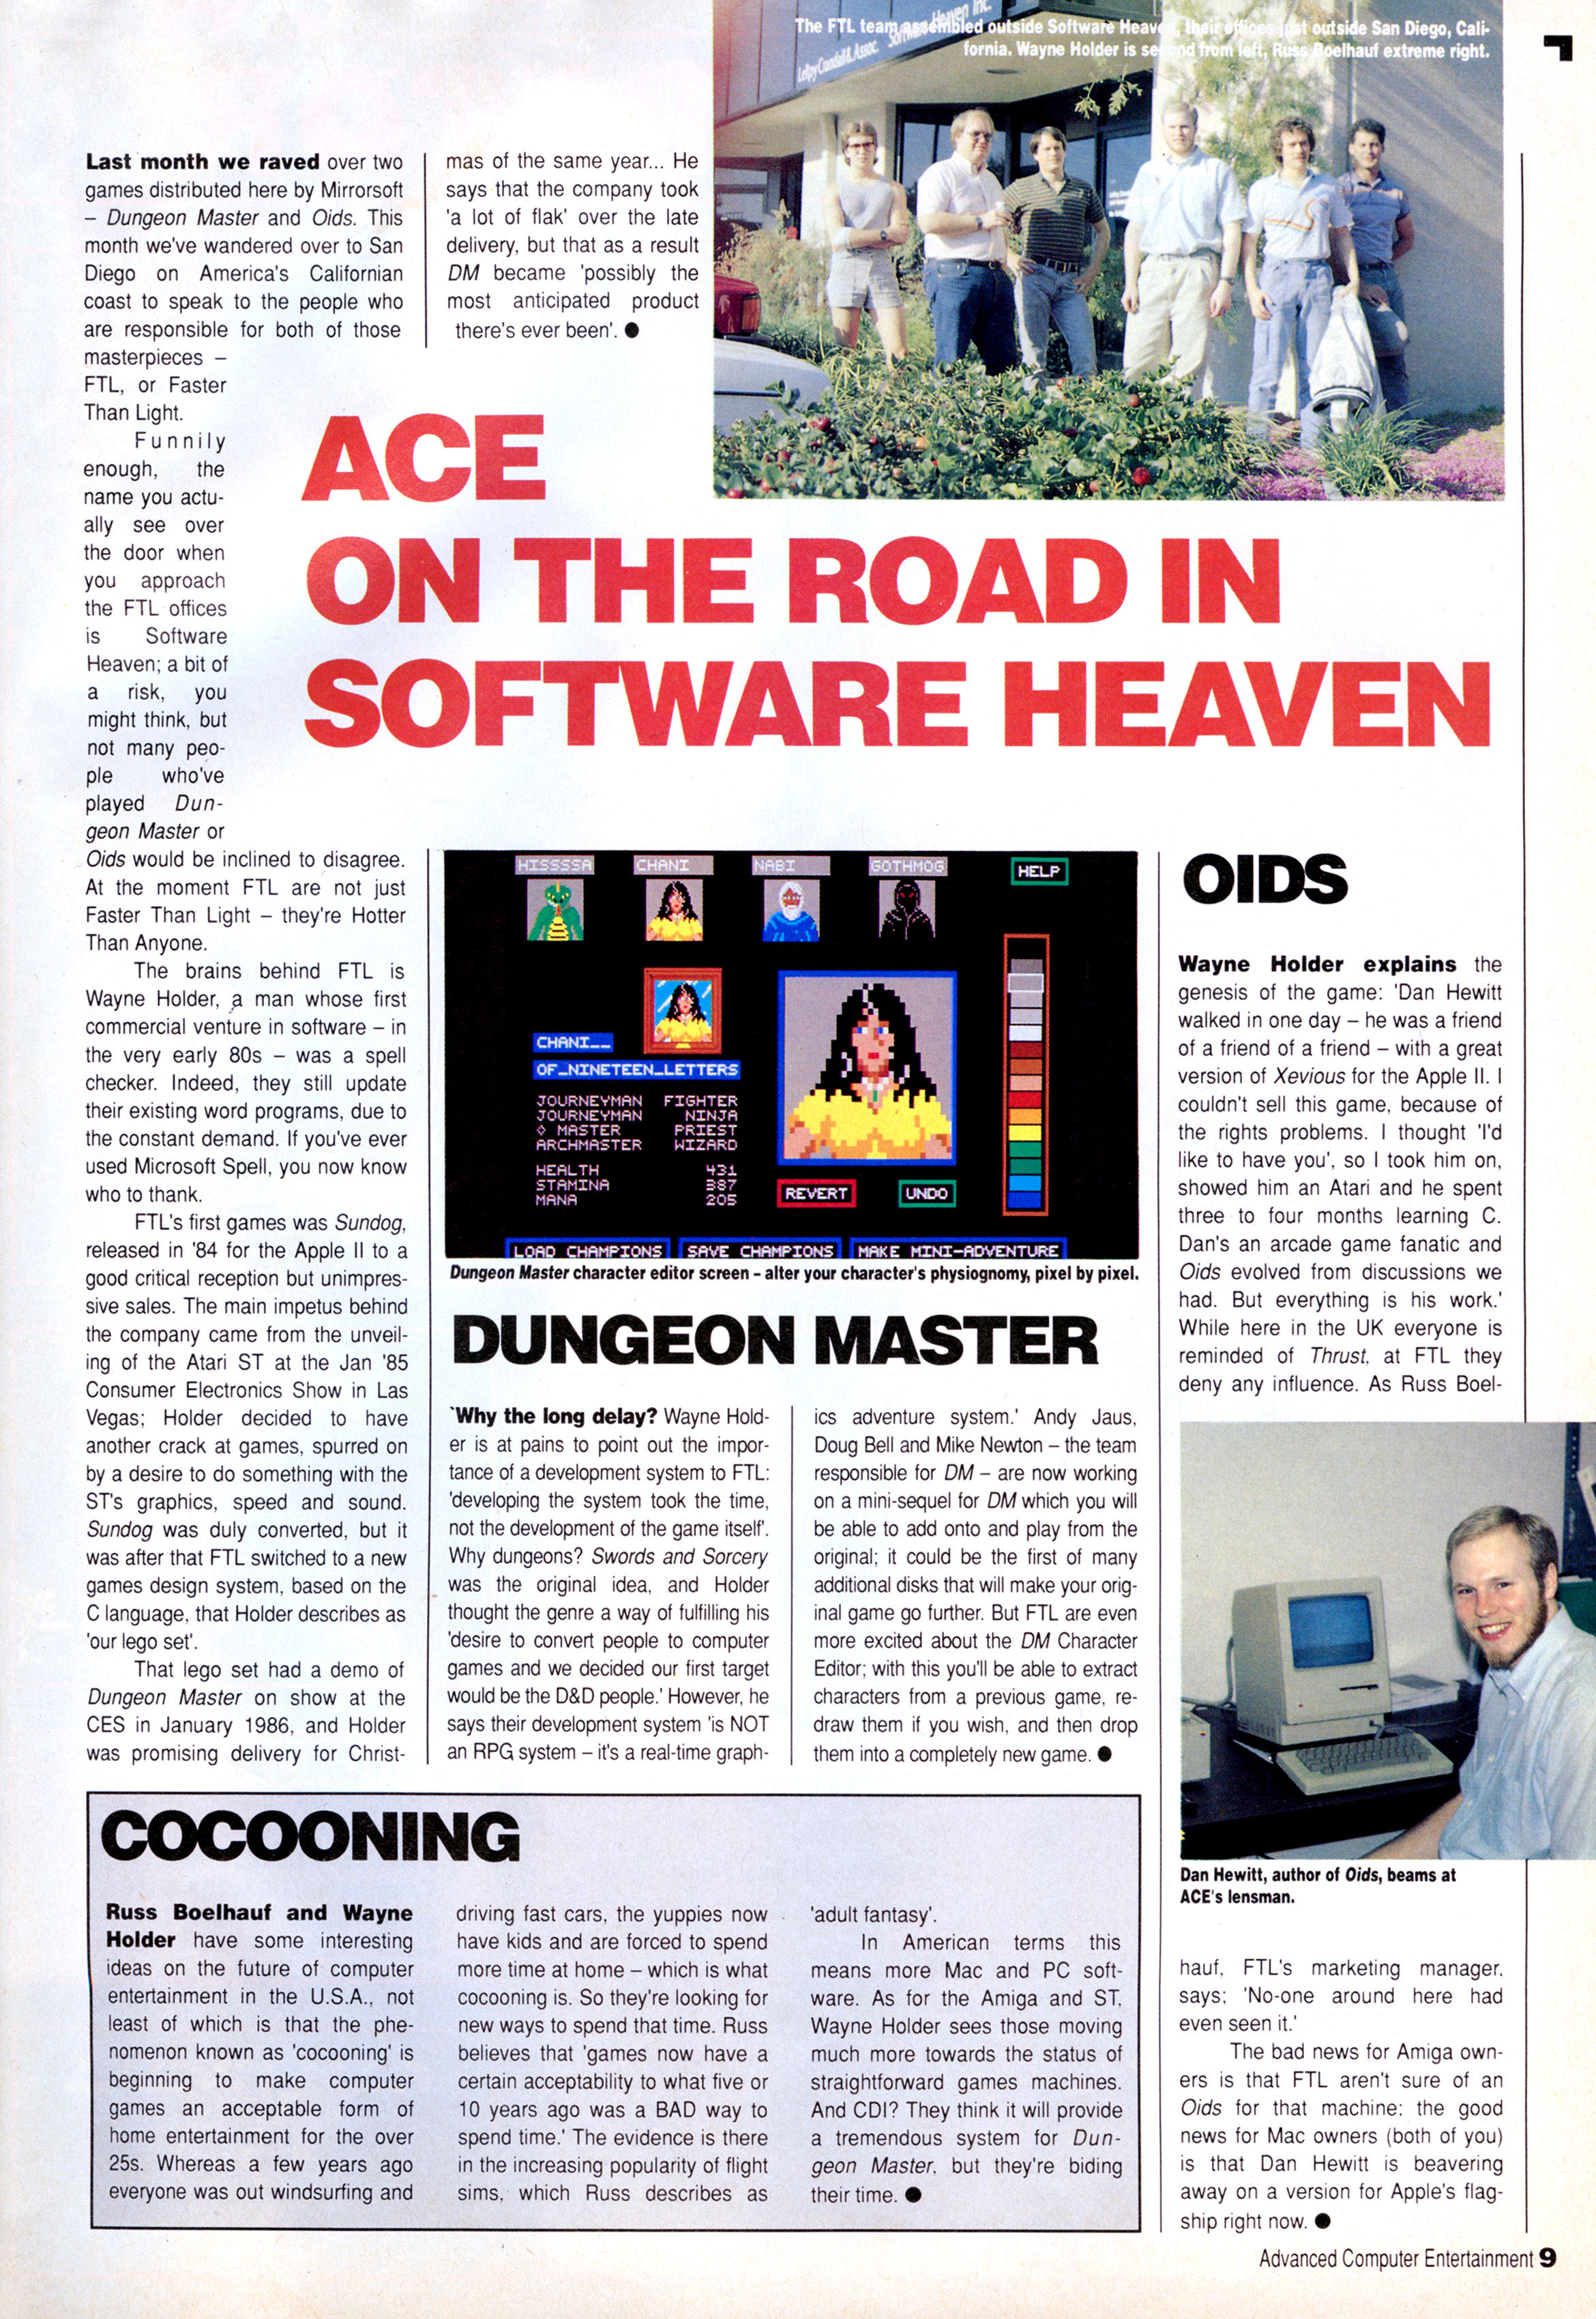 Dungeon Master Article published in British magazine 'Advanced Computer Entertainment', Issue #9 June 1988, Page 9